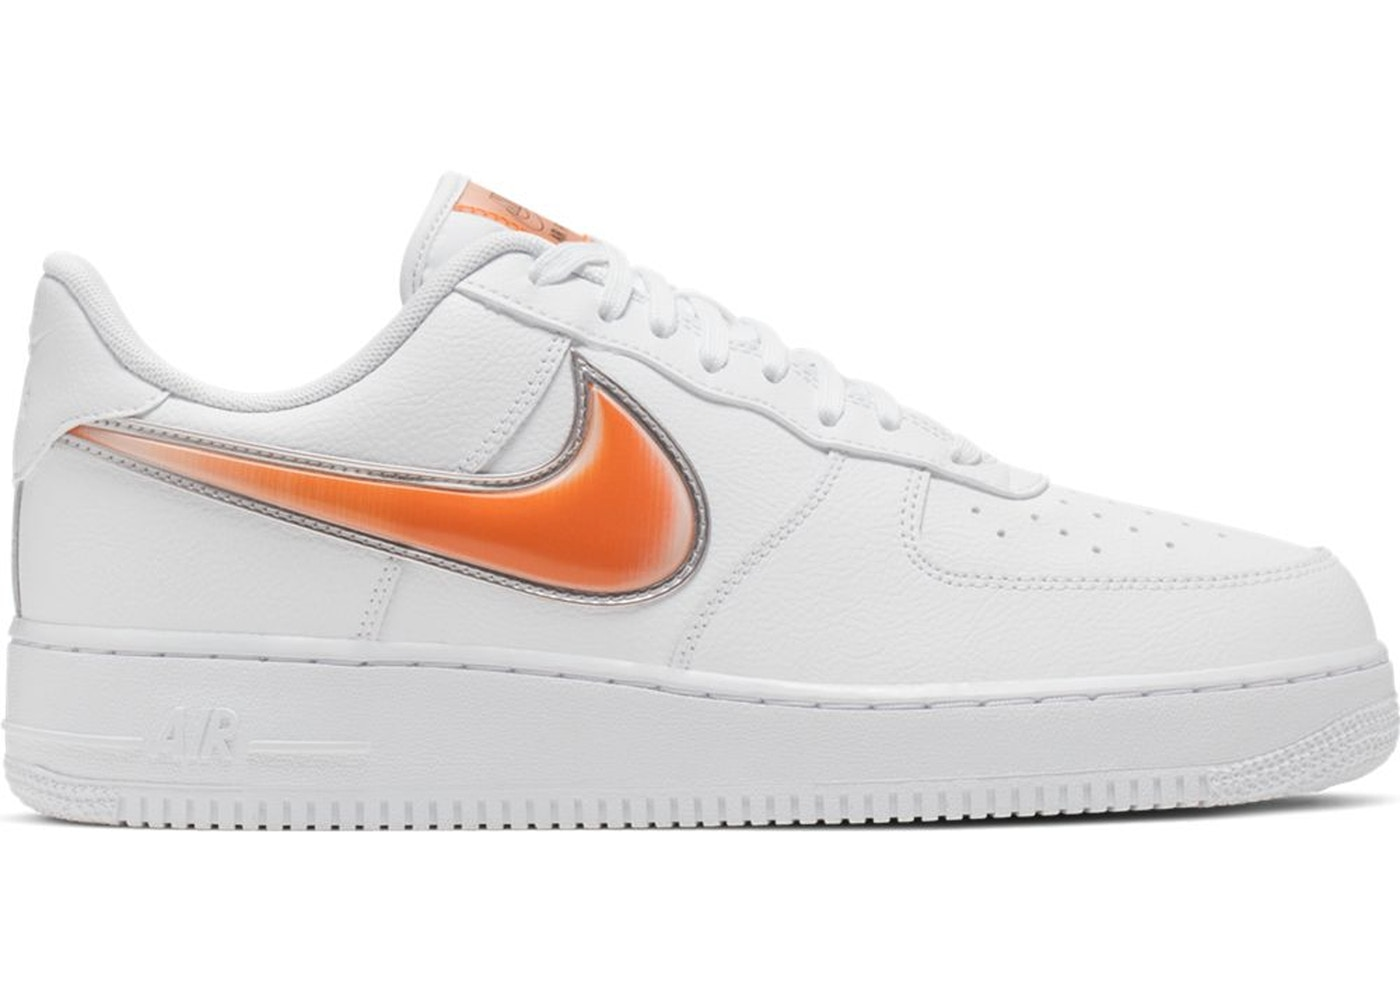 online retailer 38ee5 fba0d Nike Air Force Shoes - Release Date